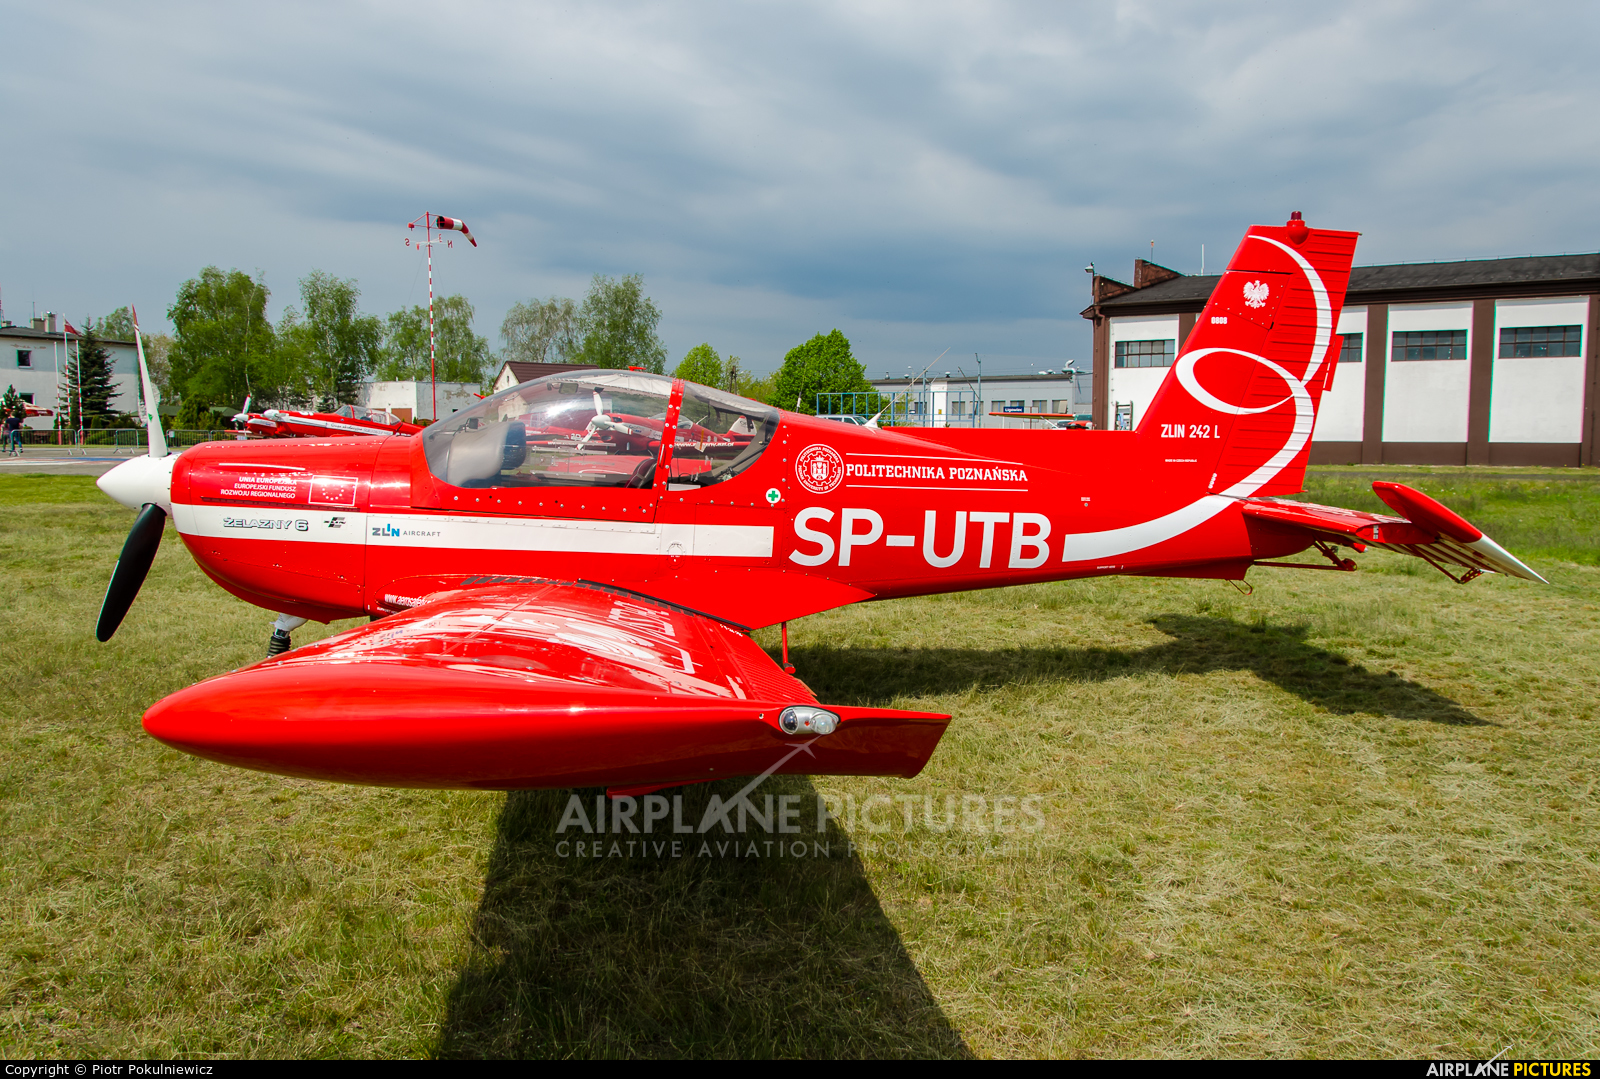 Grupa Akrobacyjna Żelazny - Acrobatic Group SP-UTB aircraft at Poznań - Kobylnica